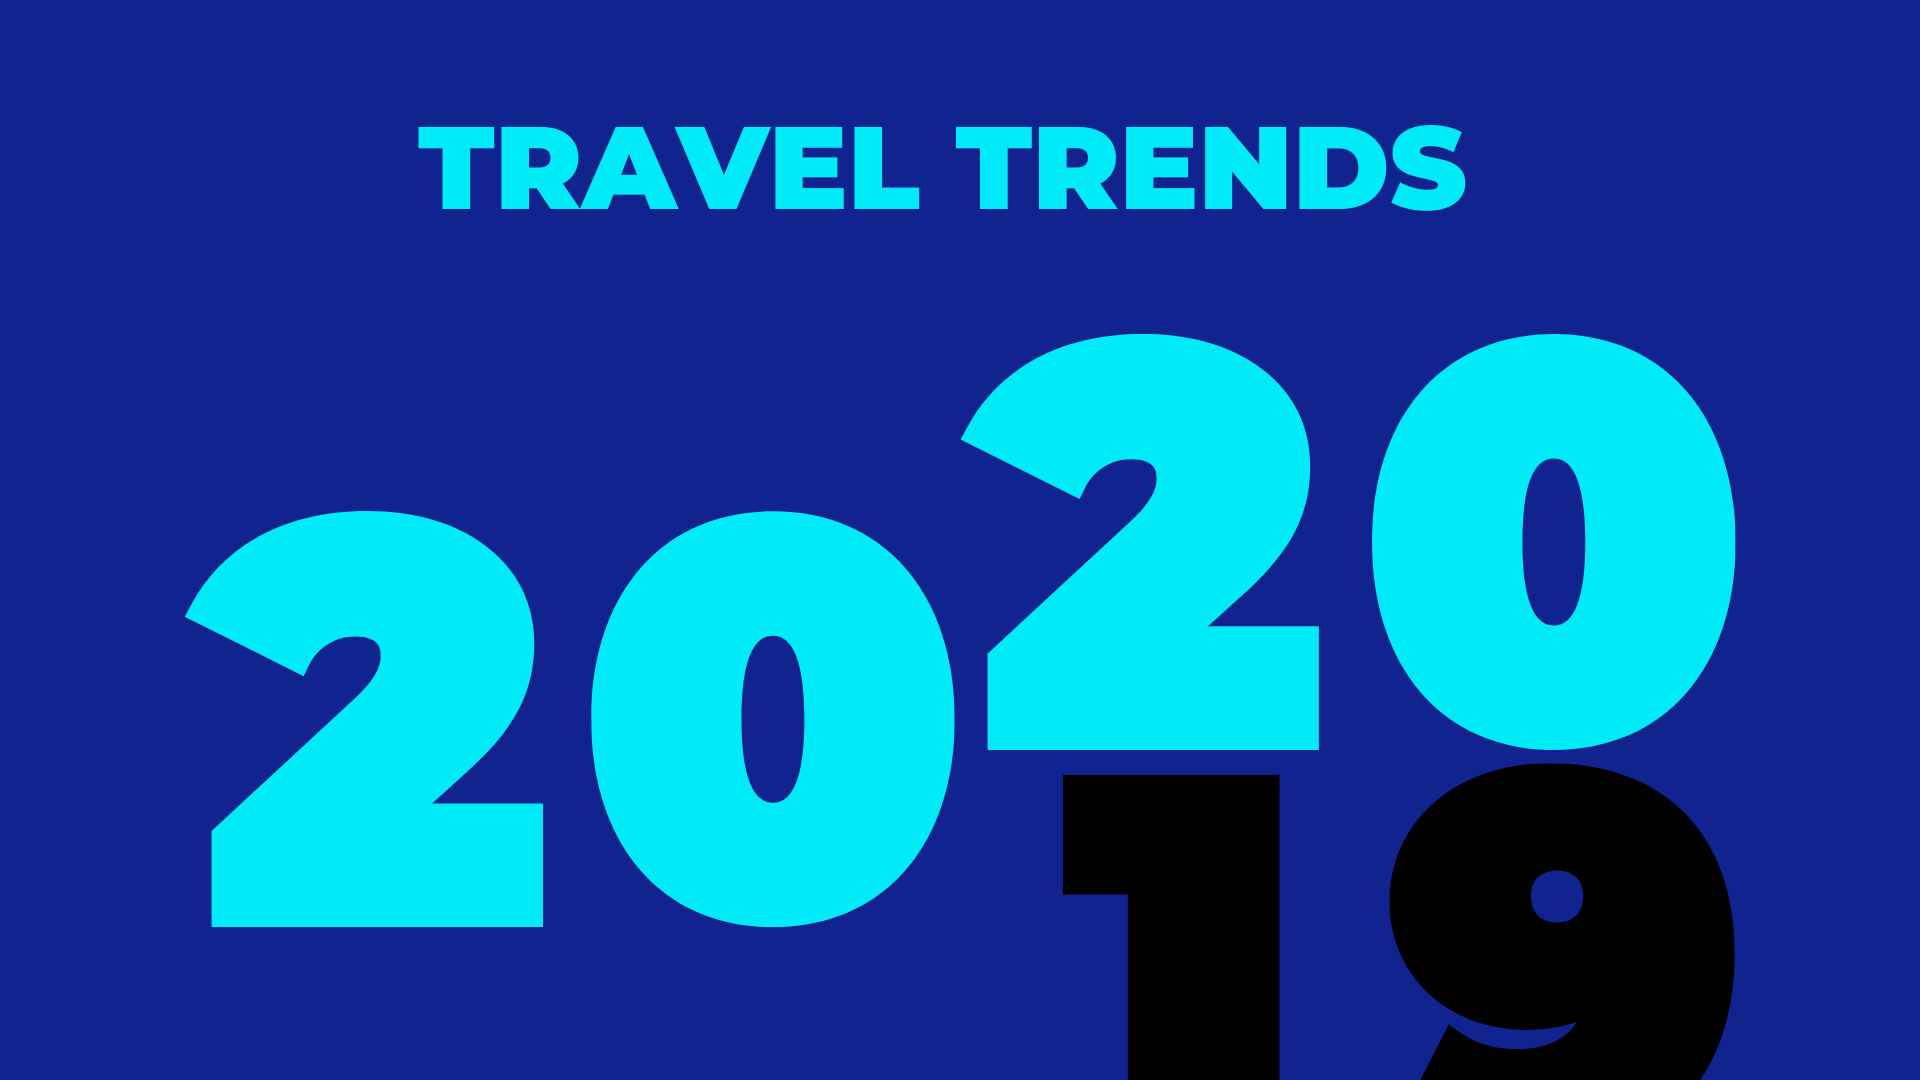 Travel Trends in 2020